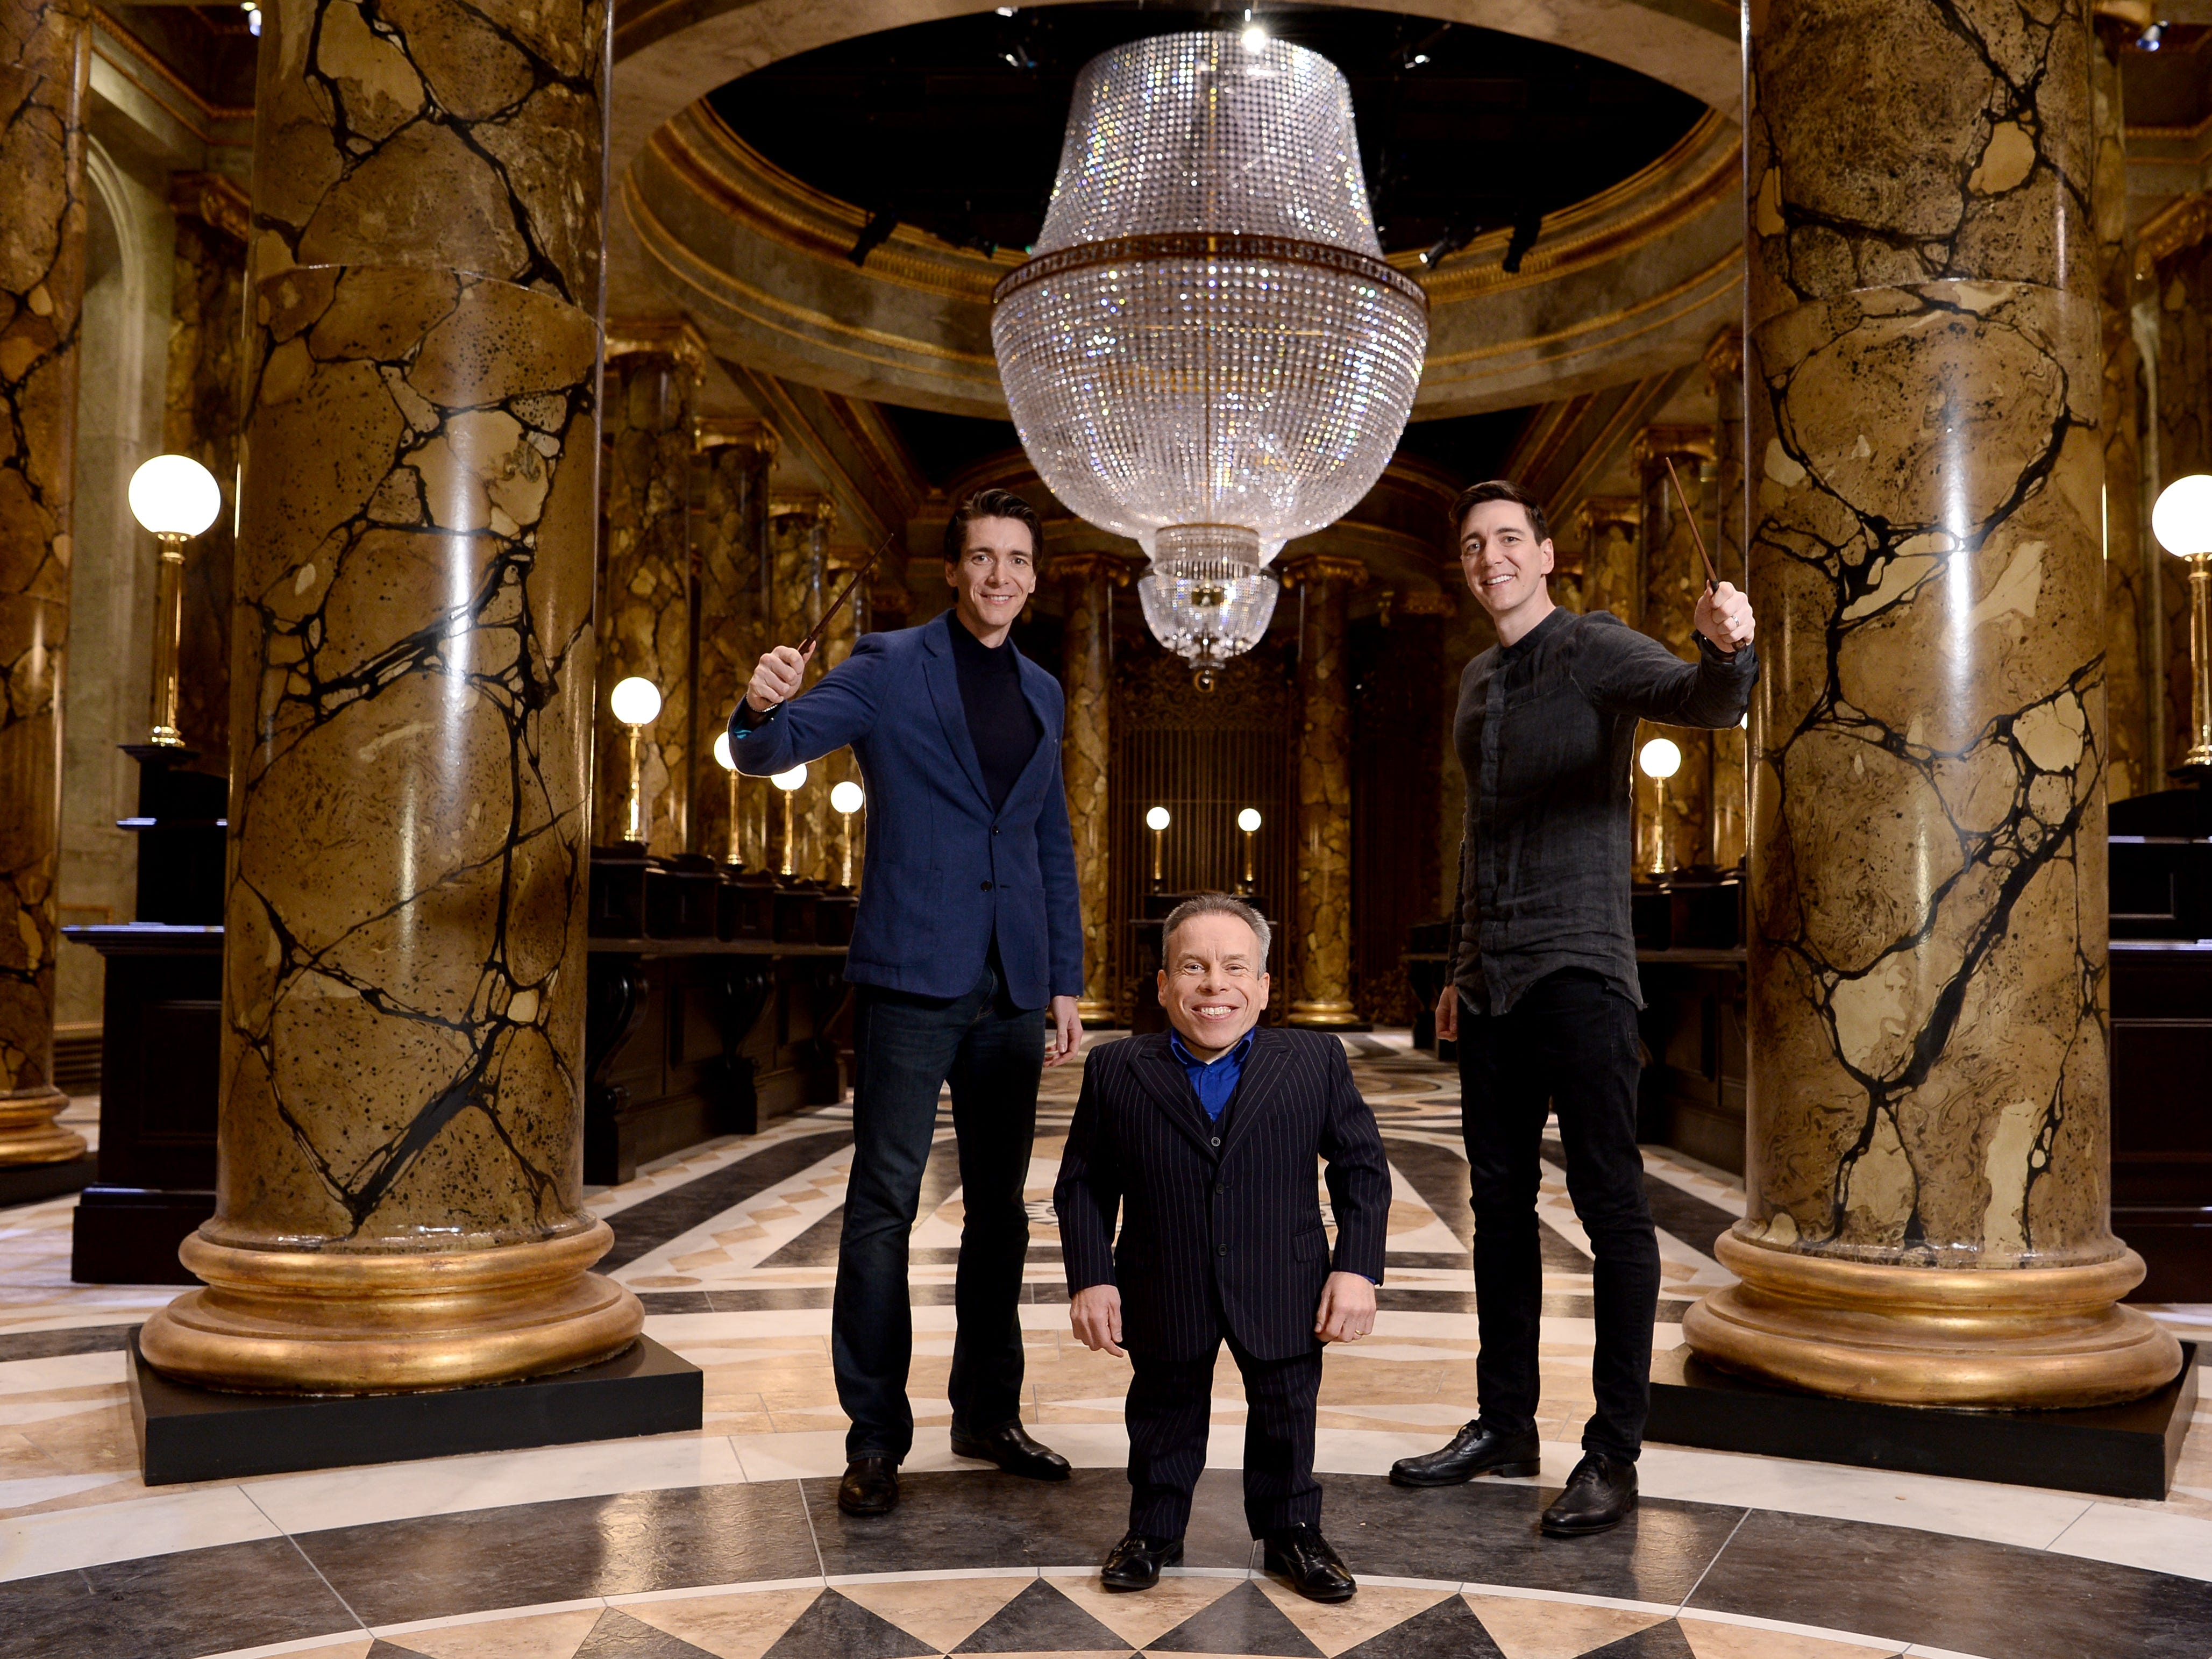 WATFORD, ENGLAND - MARCH 19:  (L-R) Oliver Phelps, Warwick Davis and James Phelps in the original Gringotts Wizarding Bank set at Warner Bros. Studio Tour London on March 19, 2019 in Watford, England. Warner Bros. Studio Tour London  The Making of Harry Potter unveils its biggest expansion to date, the original Gringotts Wizarding Bank will be open to the public from Saturday 6th April. (Photo by Jeff Spicer/Getty Images for Warner Bros. Studio Tour London) ORG XMIT: 775316730 ORIG FILE ID: 1136771919